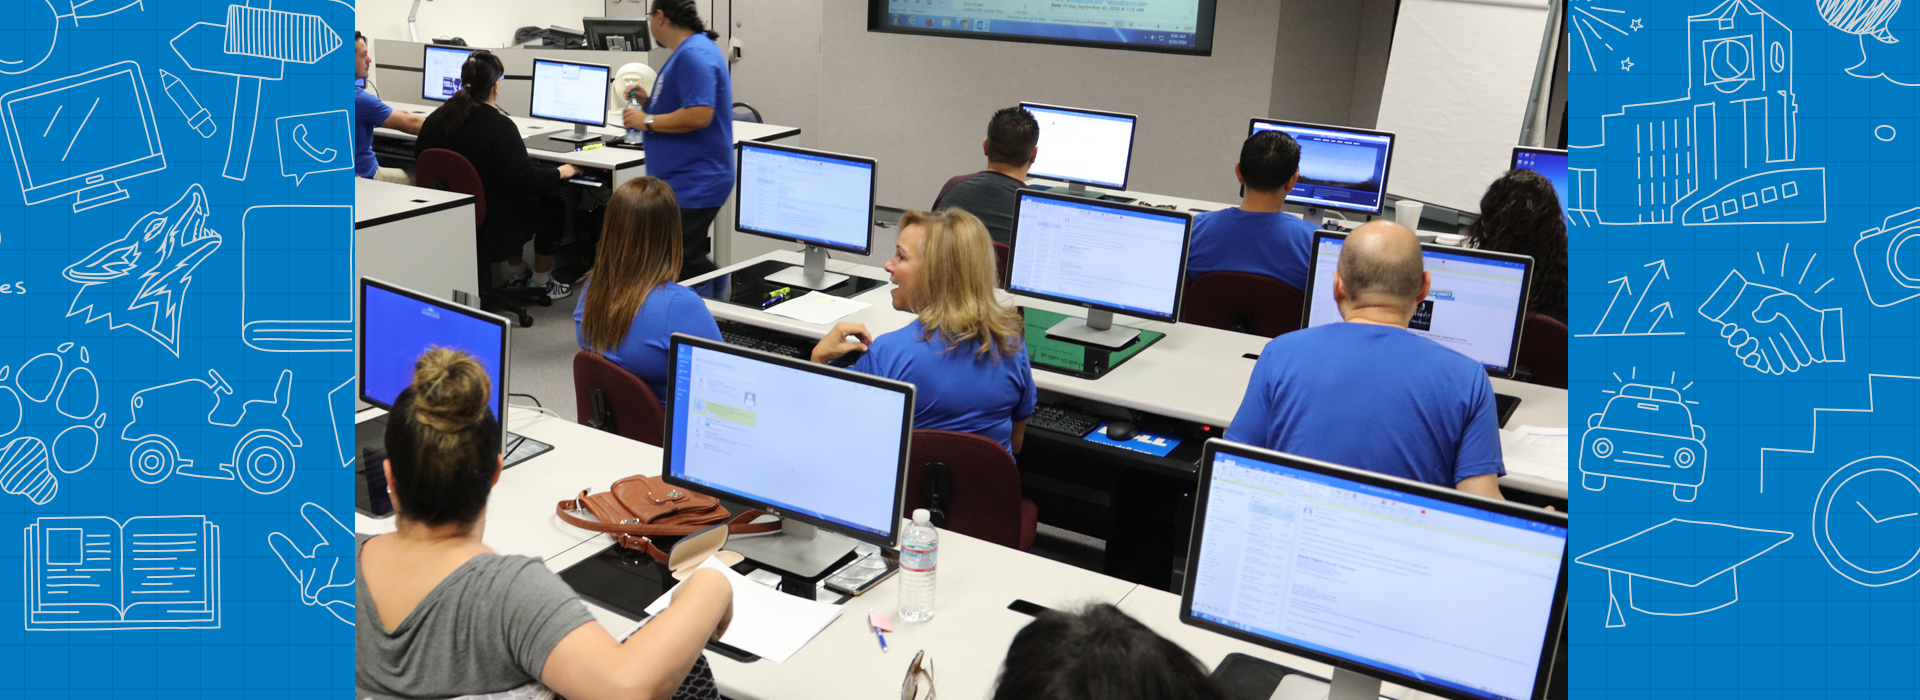 CSUSB Staff Development Center grand opening set for Sept. 12